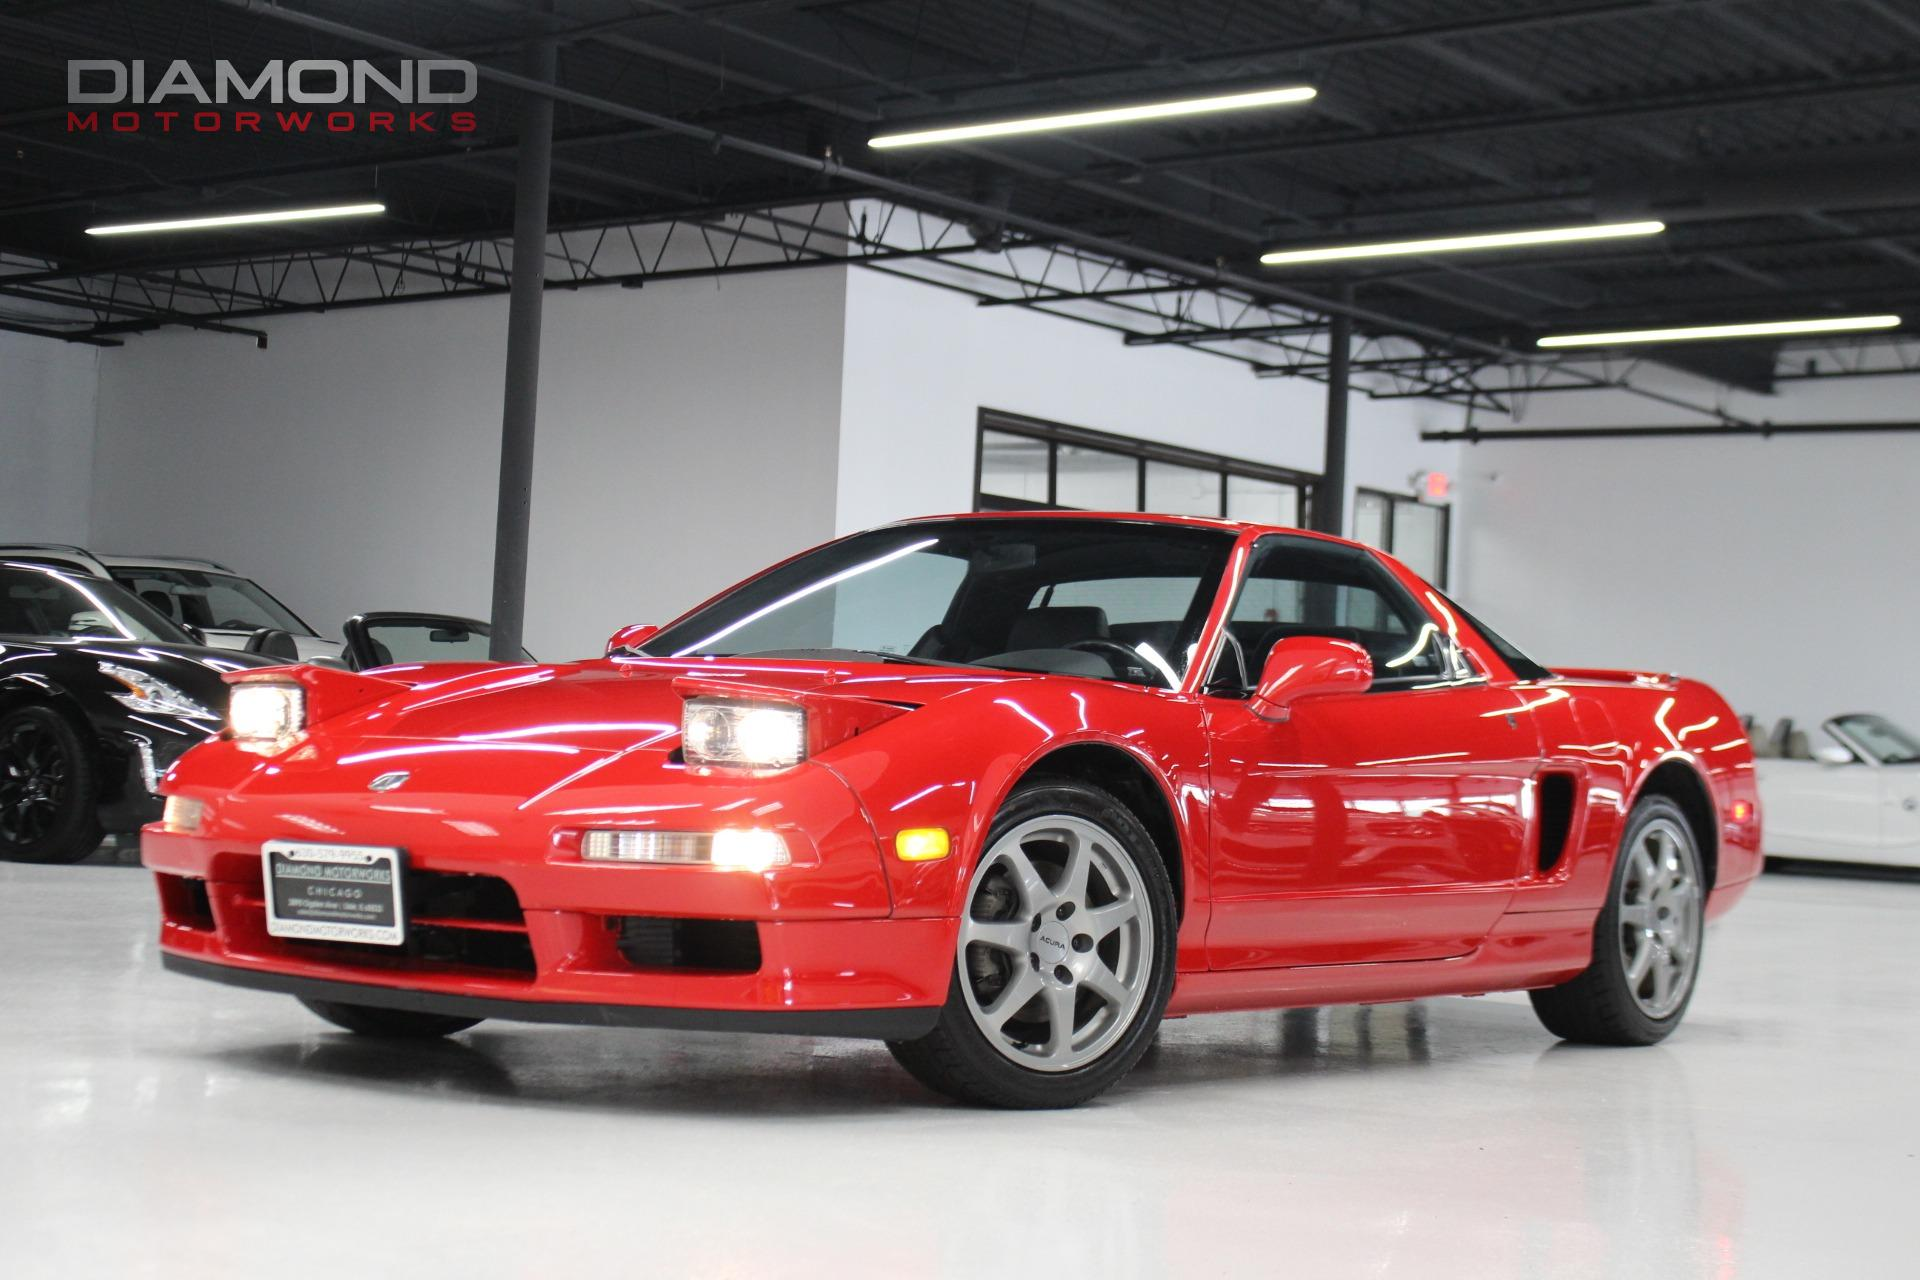 1996 acura nsx 2dr nsx t open top manual stock 000073 for sale rh diamondmotorworks com 2017 Acura NSX 2009 Acura NSX